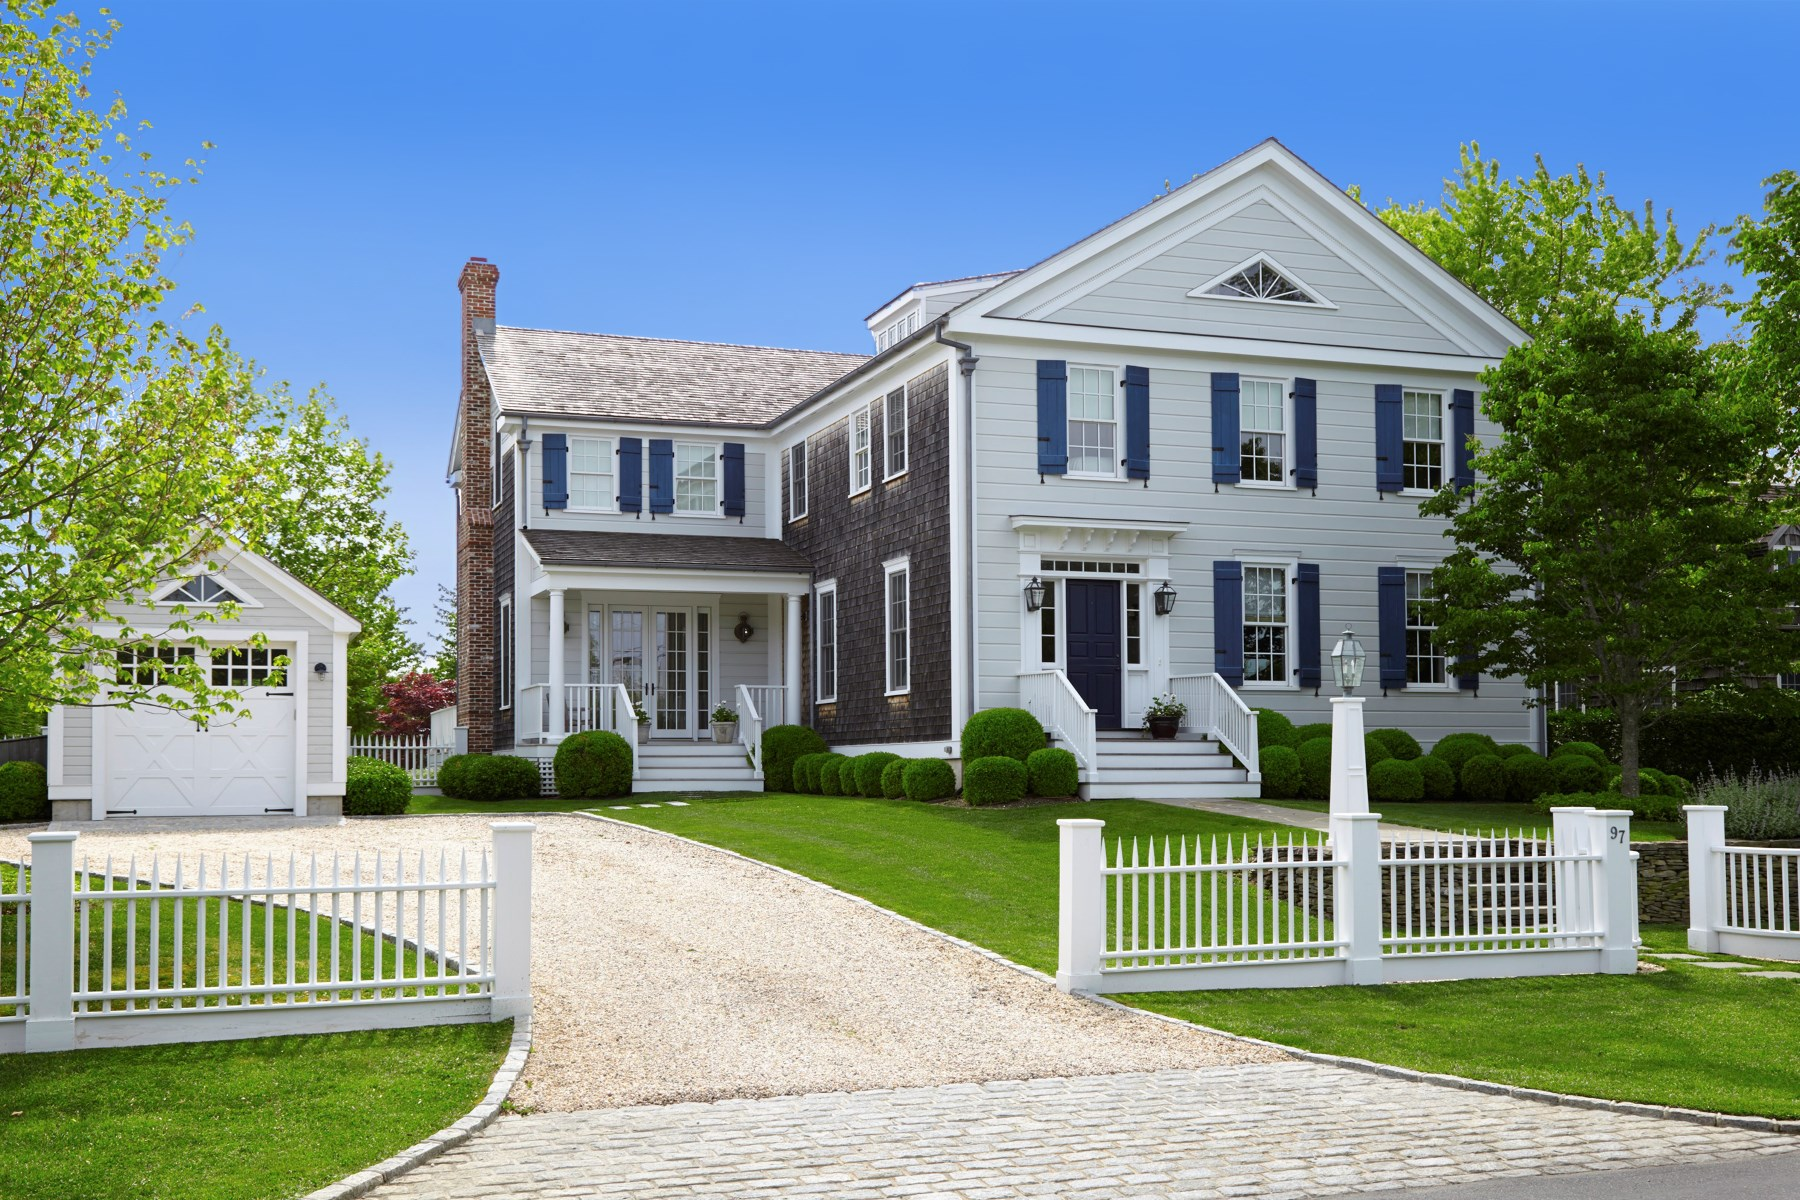 Single Family Home for Sale at Sag Harbor Village Rarity Sag Harbor, New York 11963 United States